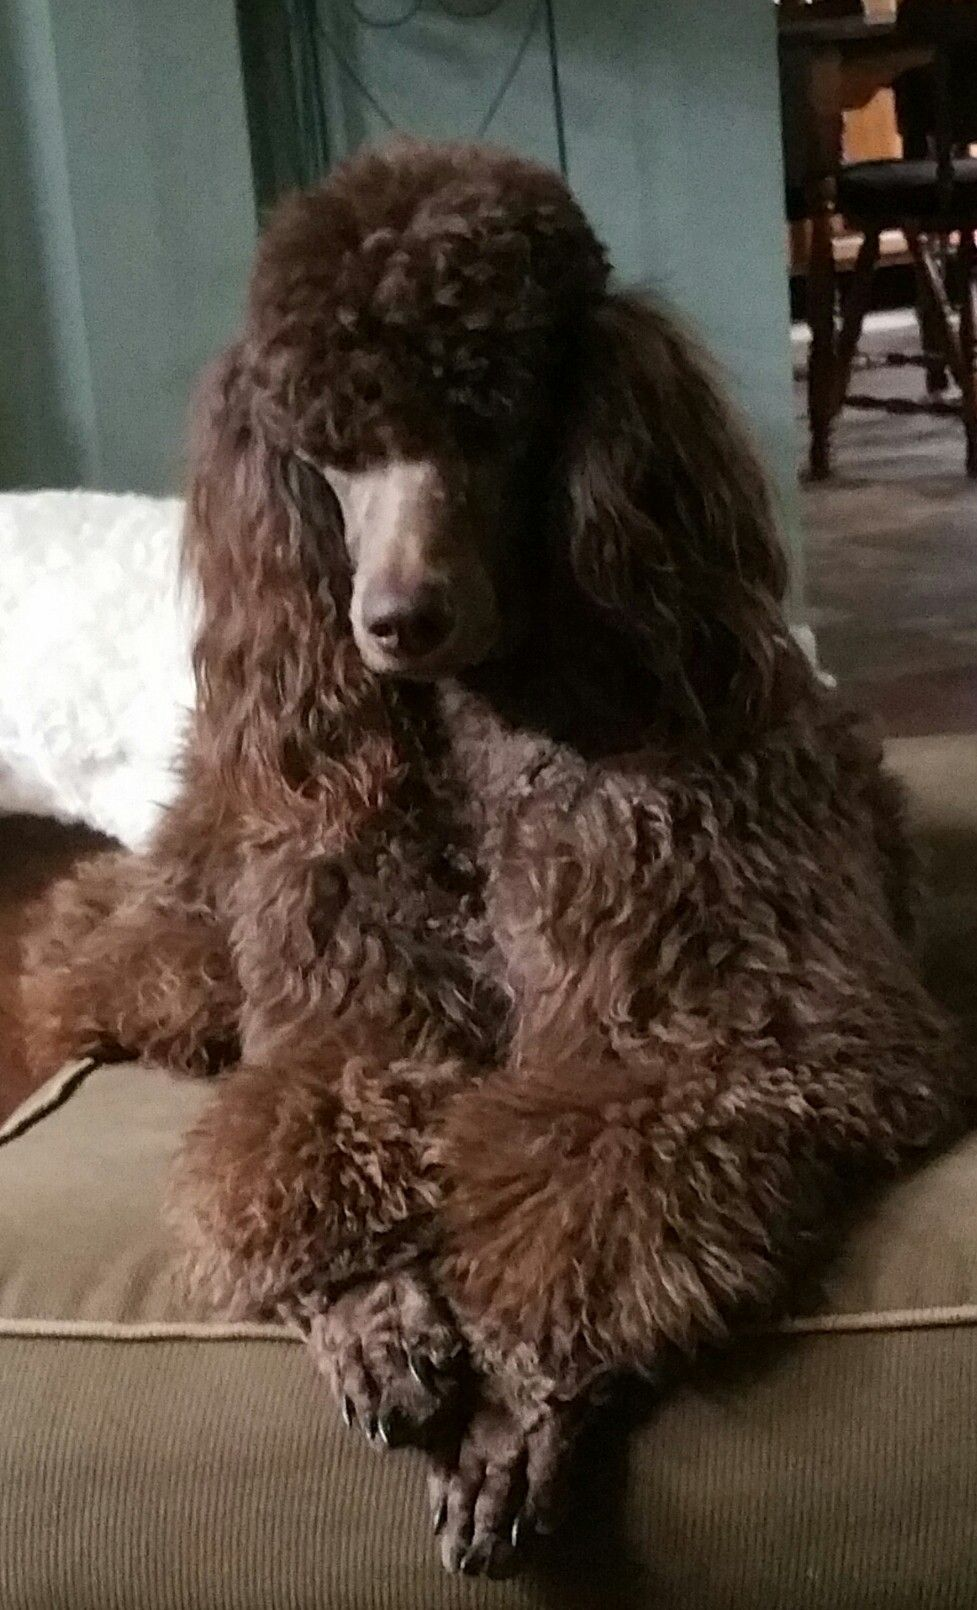 Little Girl 3 Akc Poodle Puppy For Sale Sequatchie Tennessee